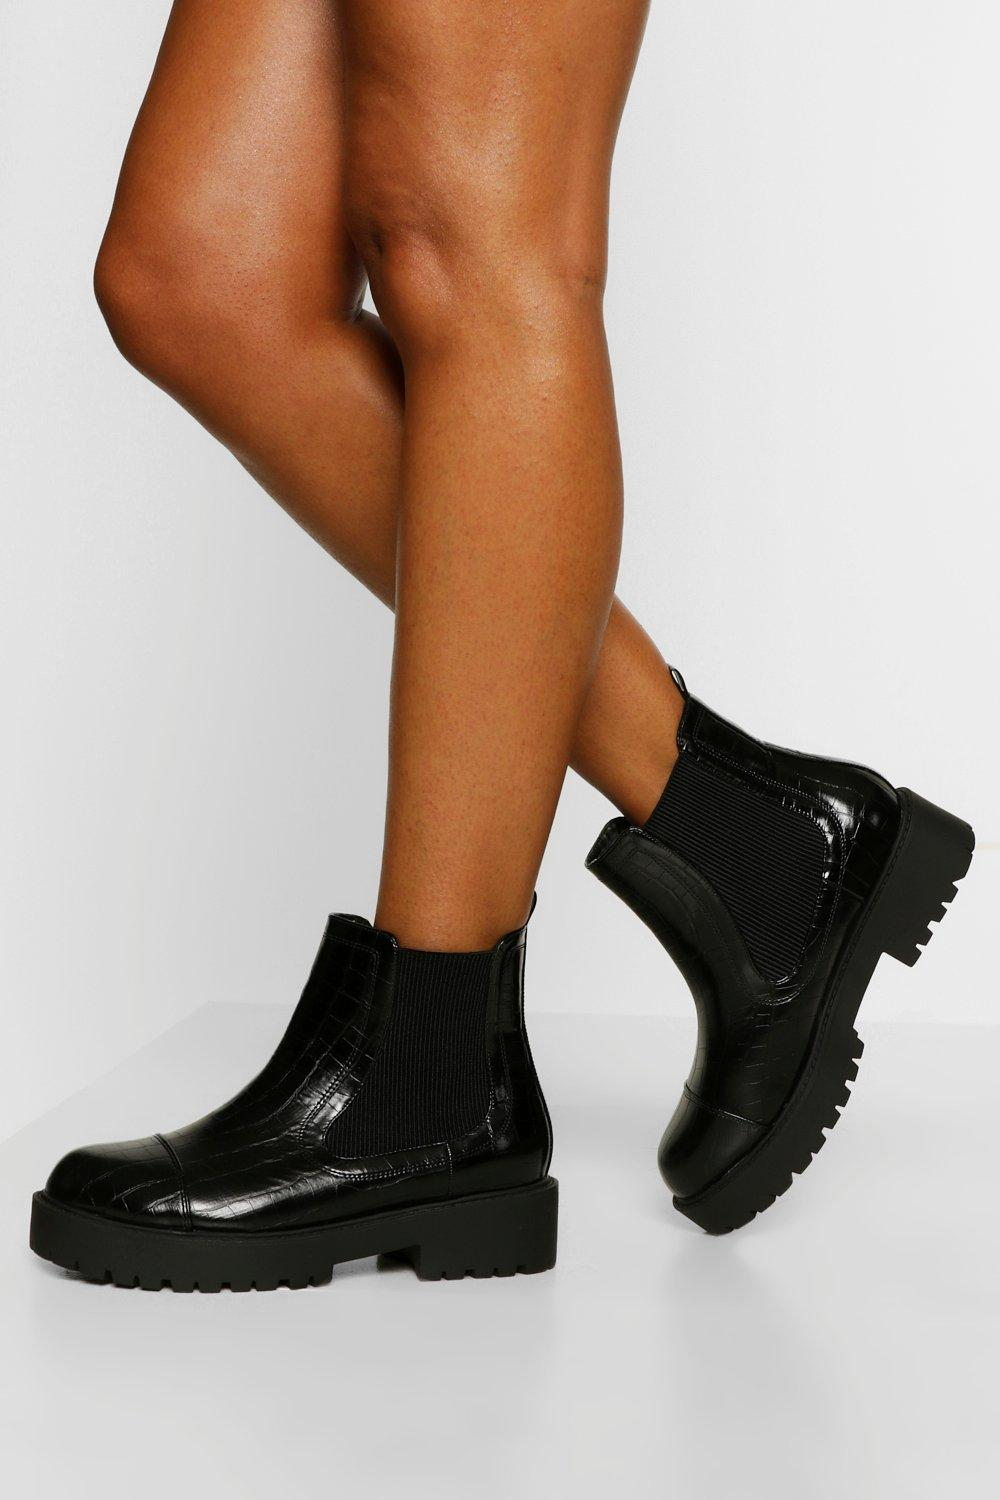 boohoo Grote Brede Chelsea Boots